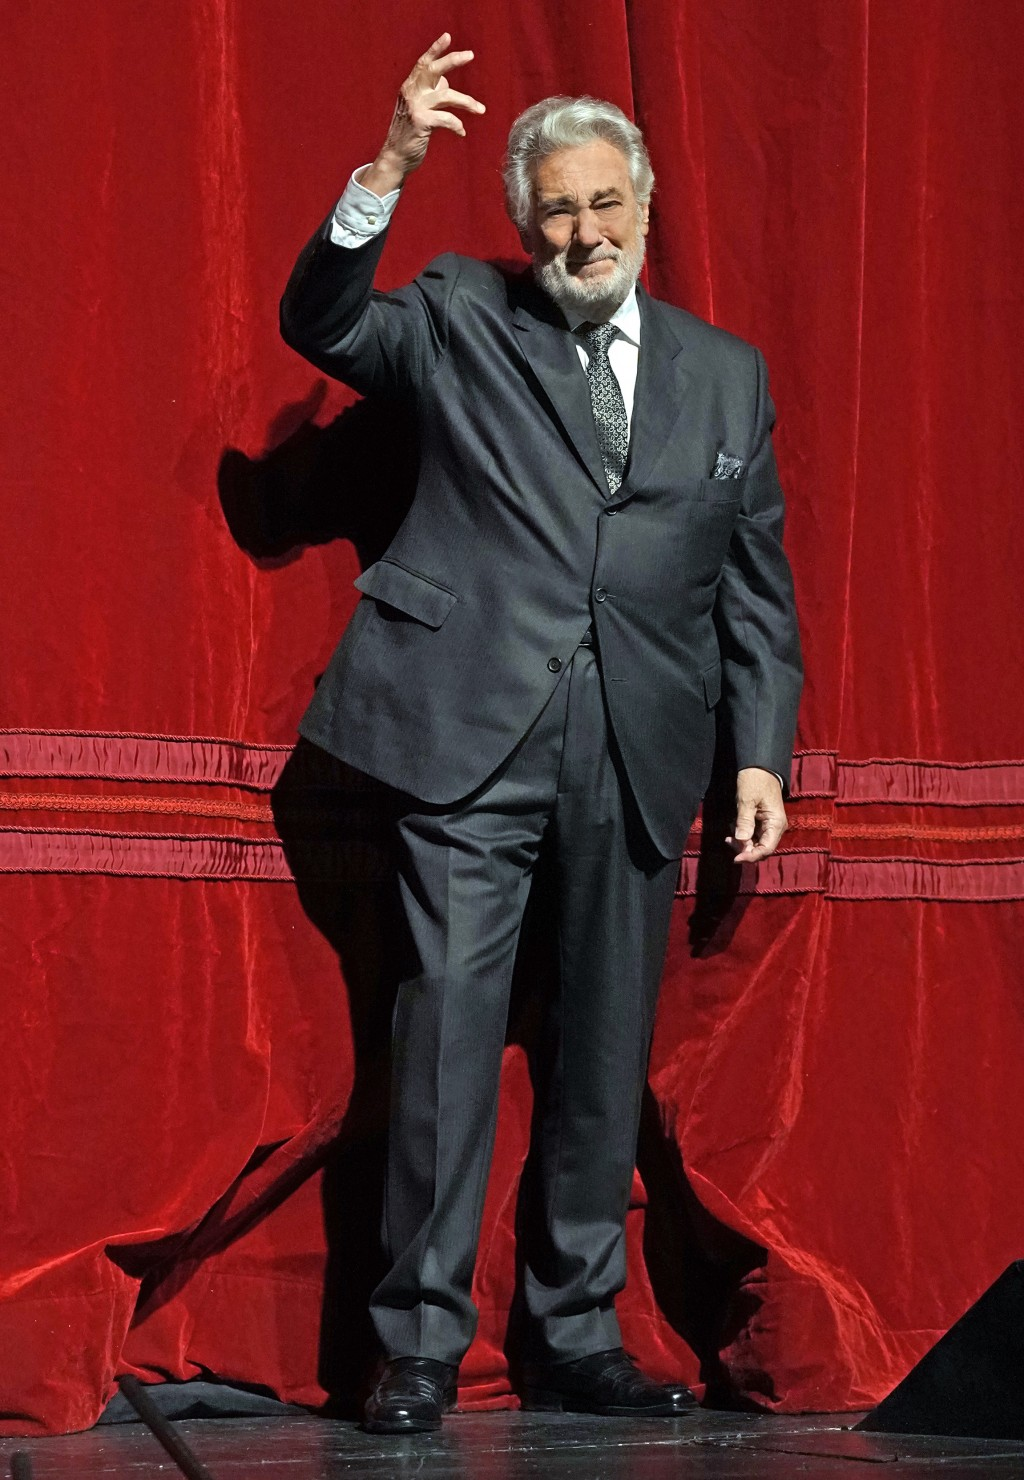 In this photo provided by the Metropolitan Opera, Placido Domingo stands on stage at the Metropolitan Opera, Friday, Nov. 23, 2018, in New York. Domin